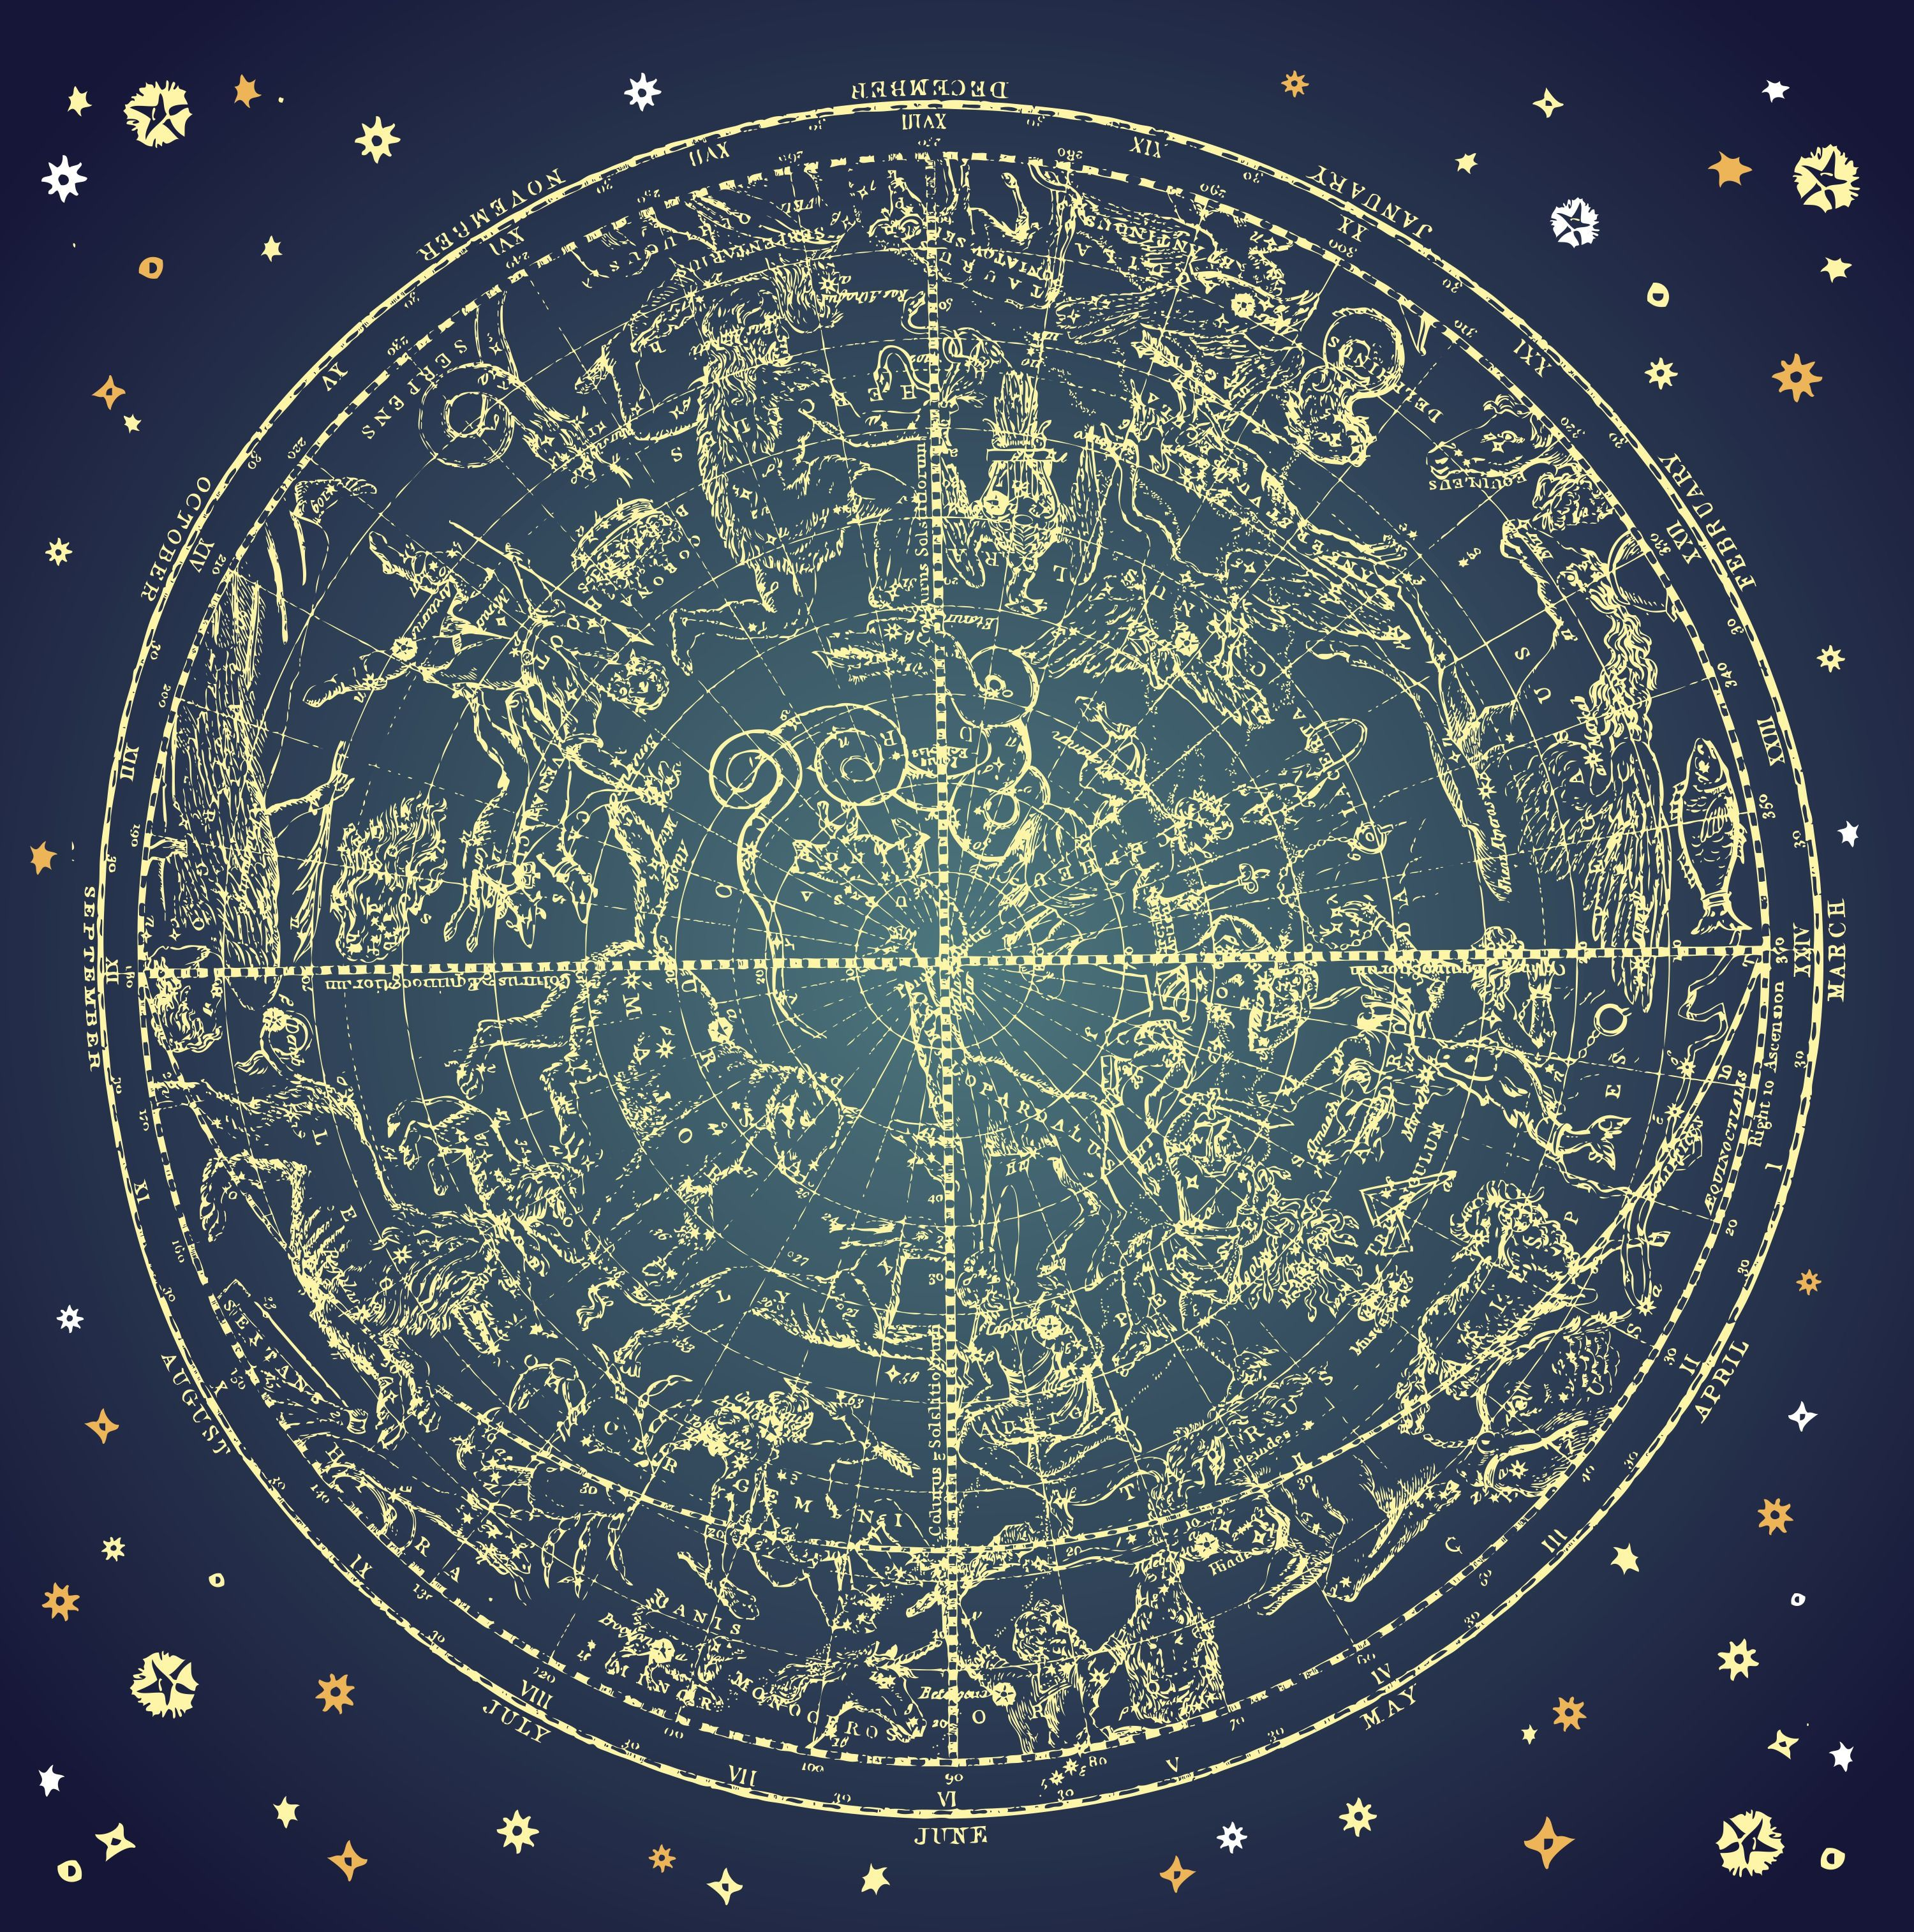 Drop everything and look up your astrological birth chart birth drop everything and look up your astrological birth chart nvjuhfo Image collections